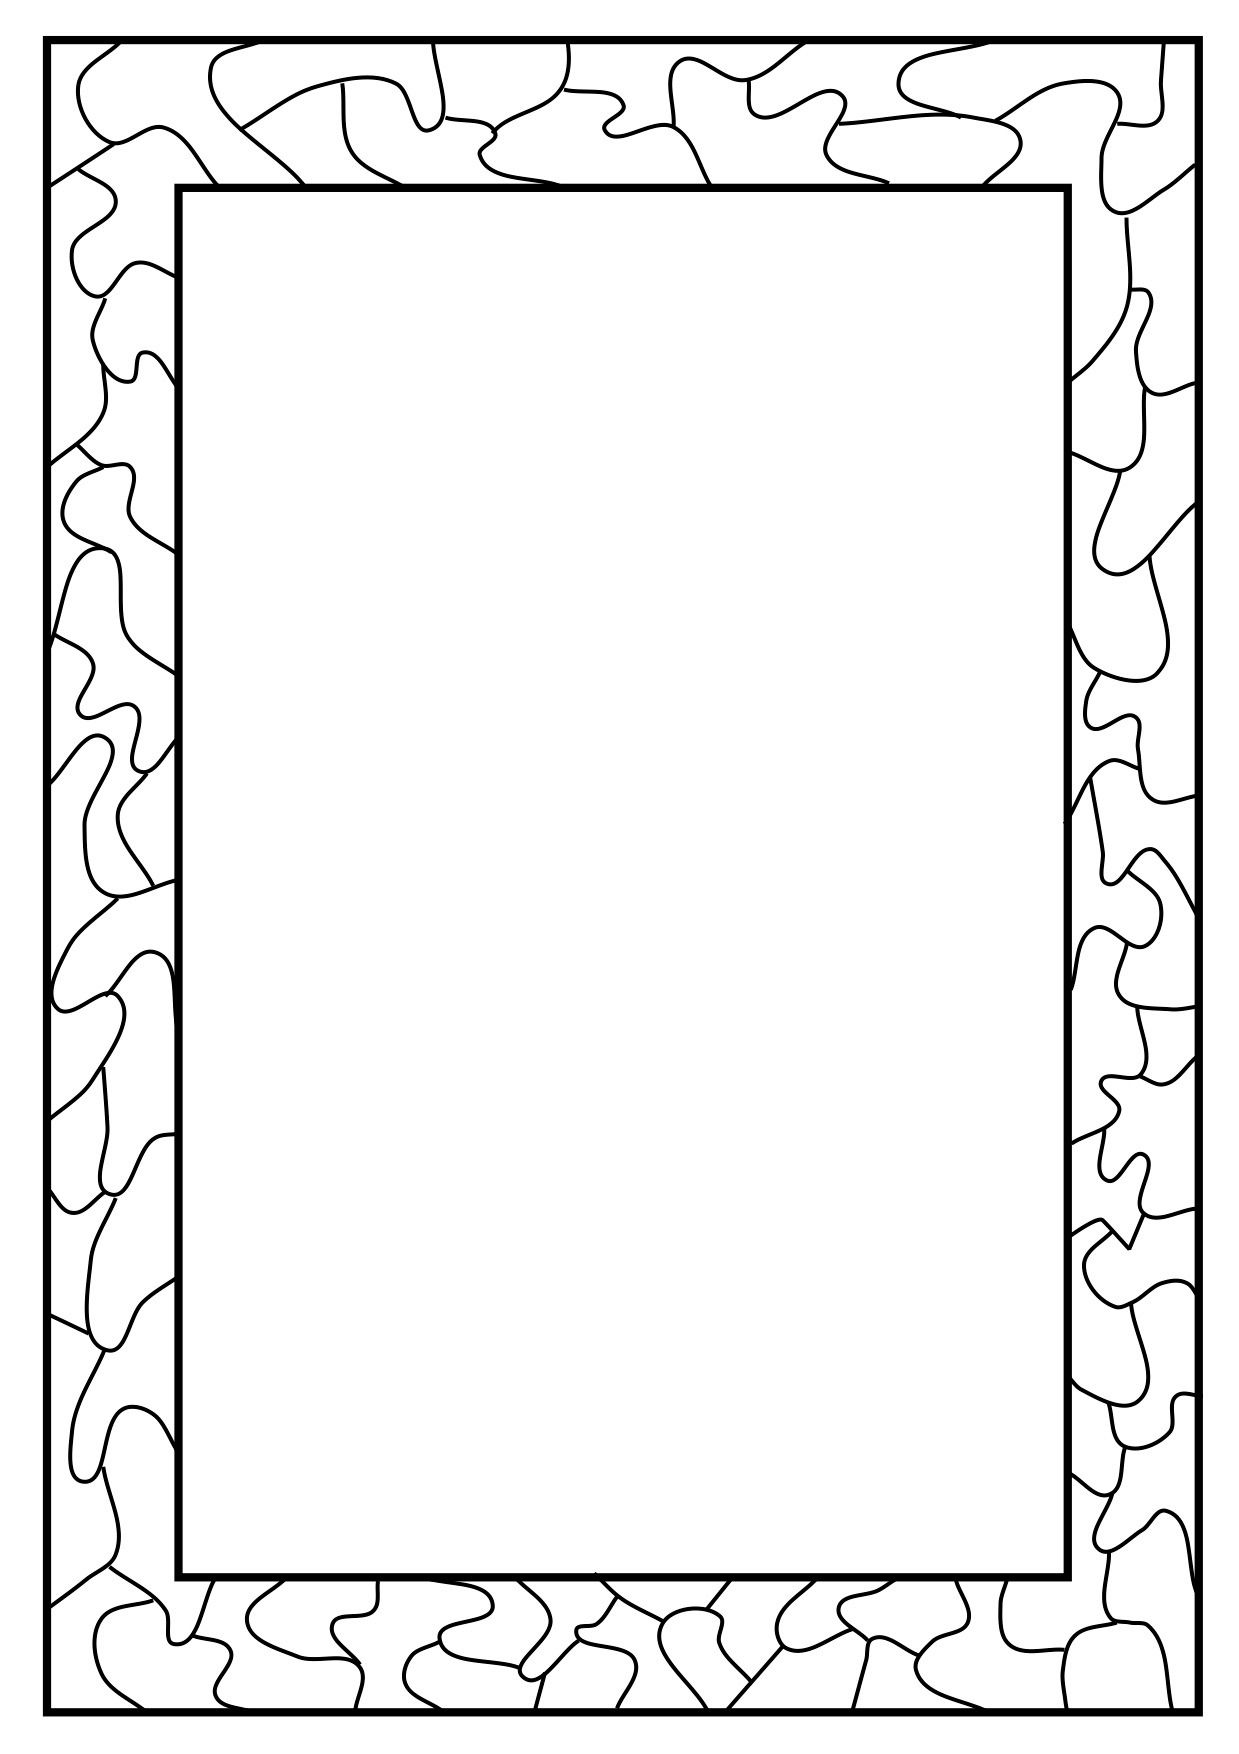 Little loops double page border free page borders - Full Page Borders Print Out A Wide Range Of Free Page Borders And Lesson Ideas